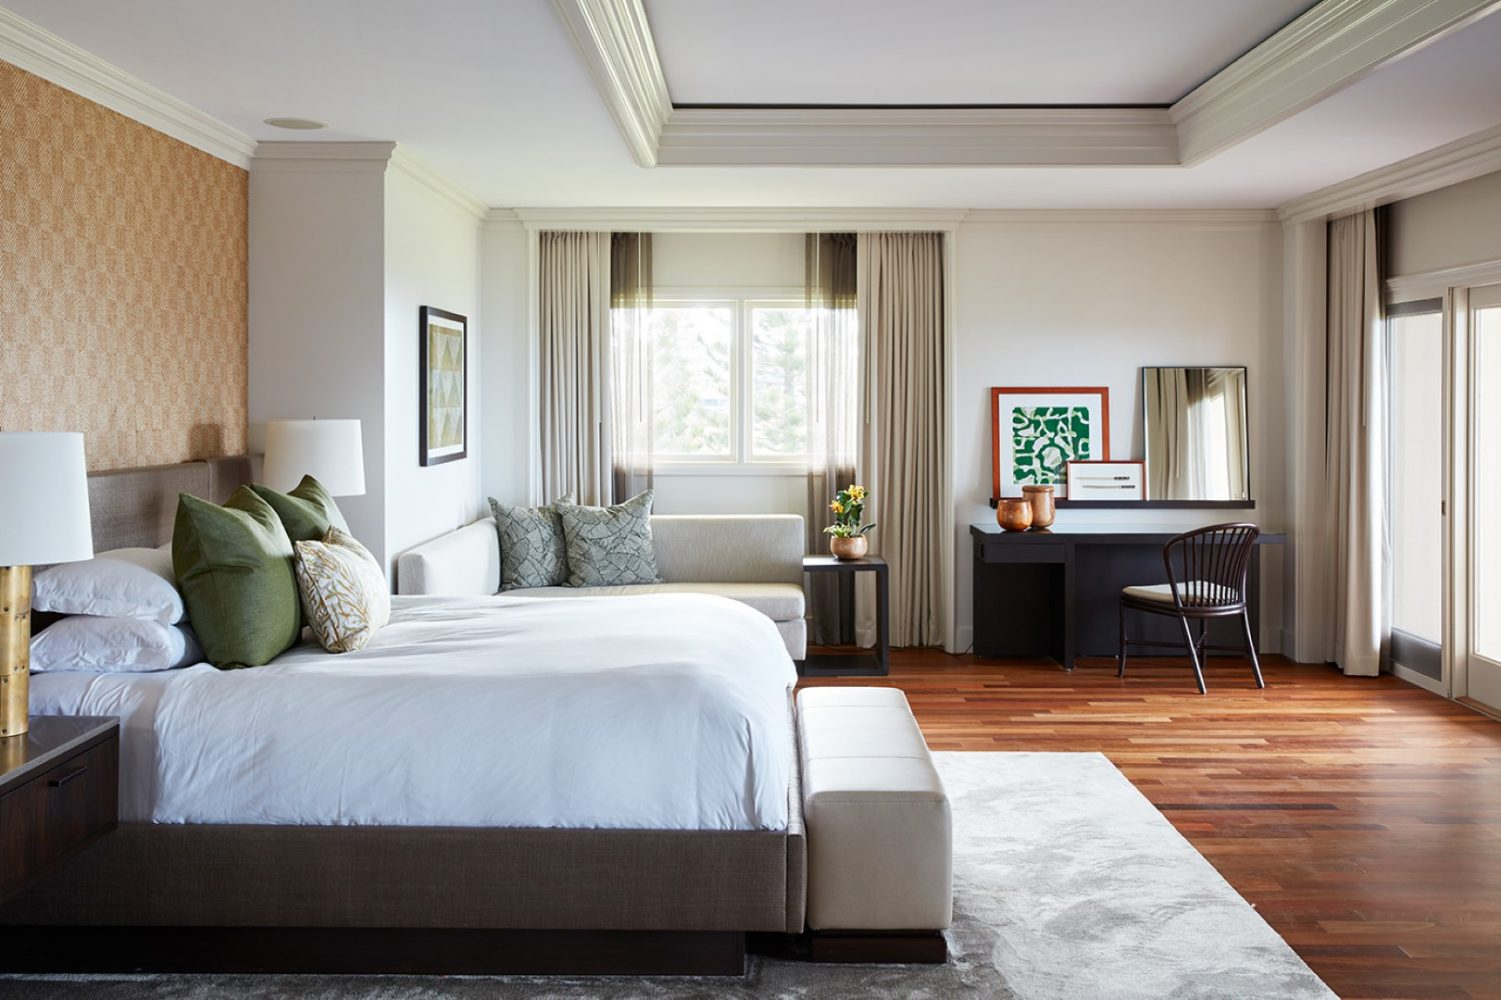 Ritz Carlton Kapalua Presidential Suite Overall by Philpotts Interiors